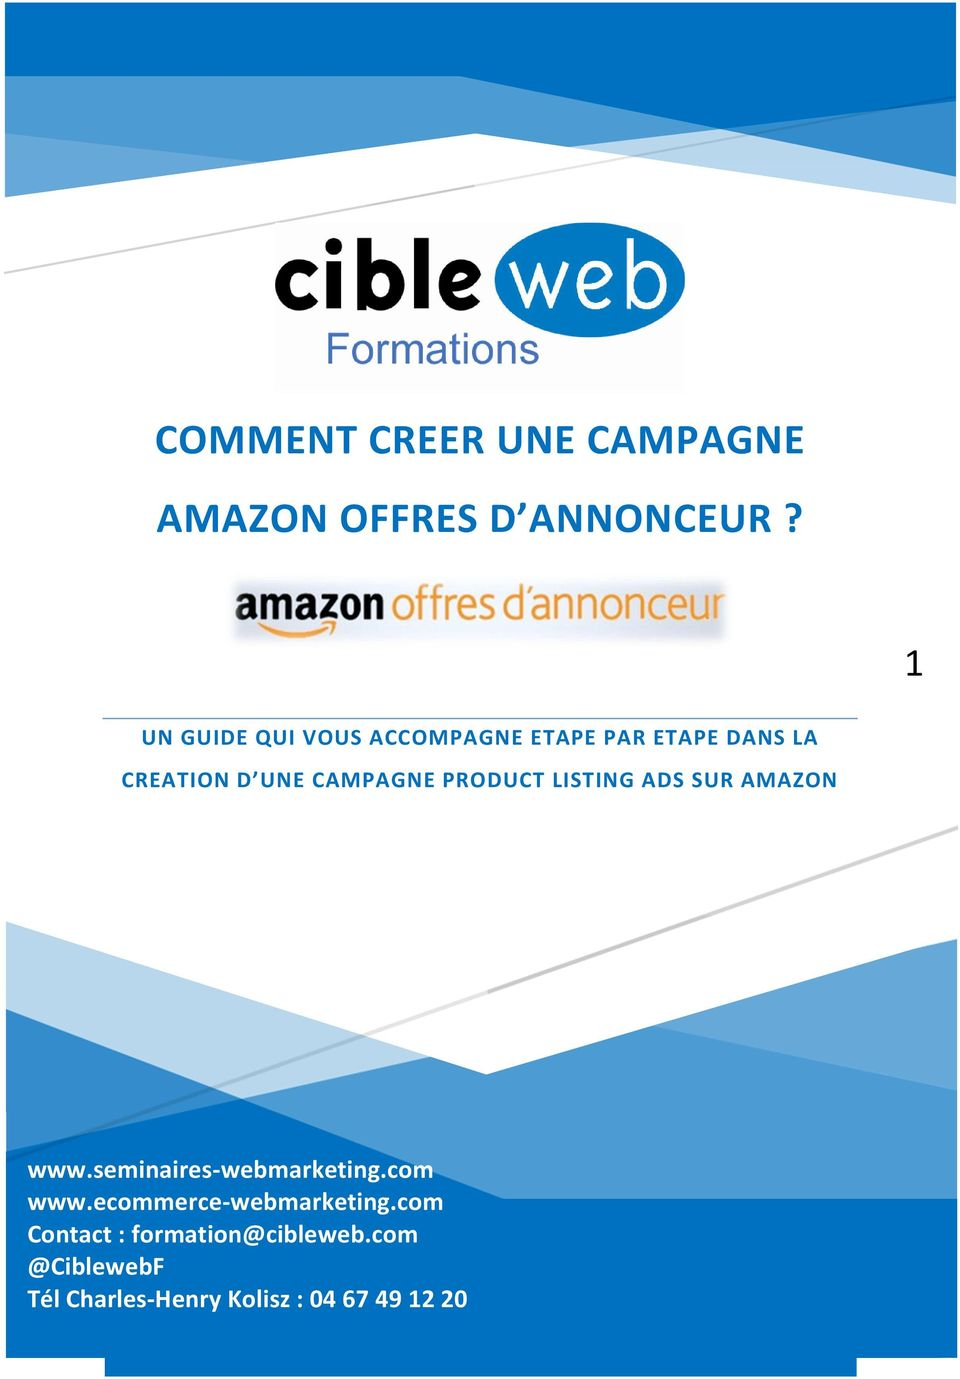 CAMPAGNE PRODUCT LISTING ADS SUR AMAZON www.seminaires-webmarketing.com www.